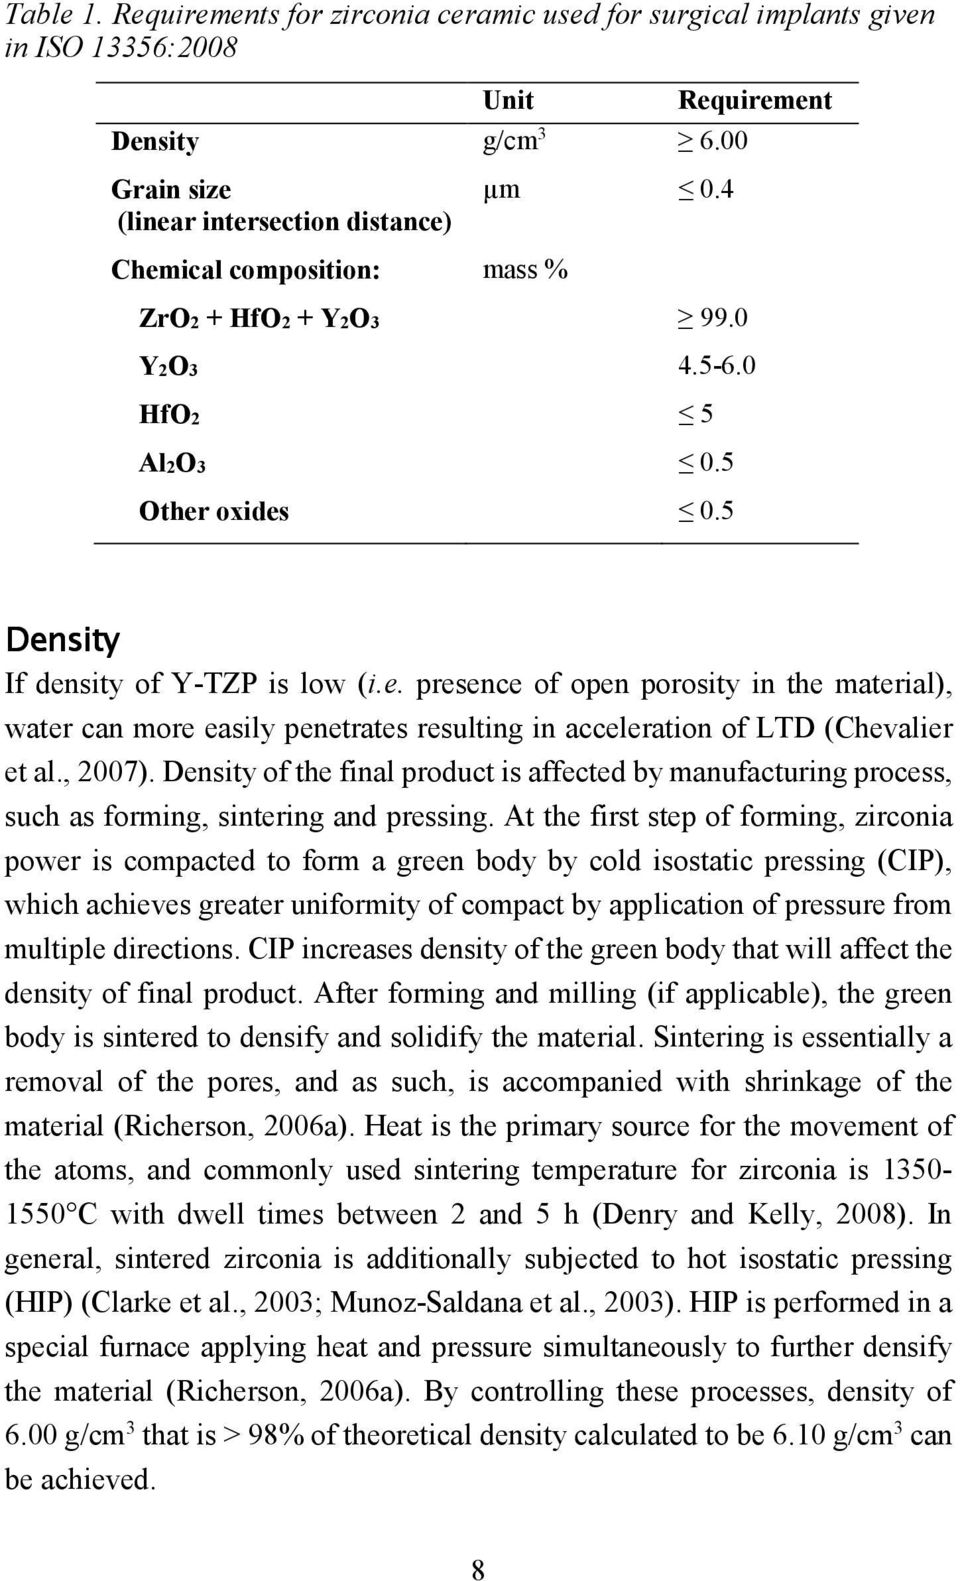 oxides Unit g/cm 3 µm mass % Requirement 6.00 0.4 99.0 4.5-6.0 5 0.5 0.5 Density If density of Y-TZP is low (i.e. presence of open porosity in the material), water can more easily penetrates resulting in acceleration of LTD (Chevalier et al.